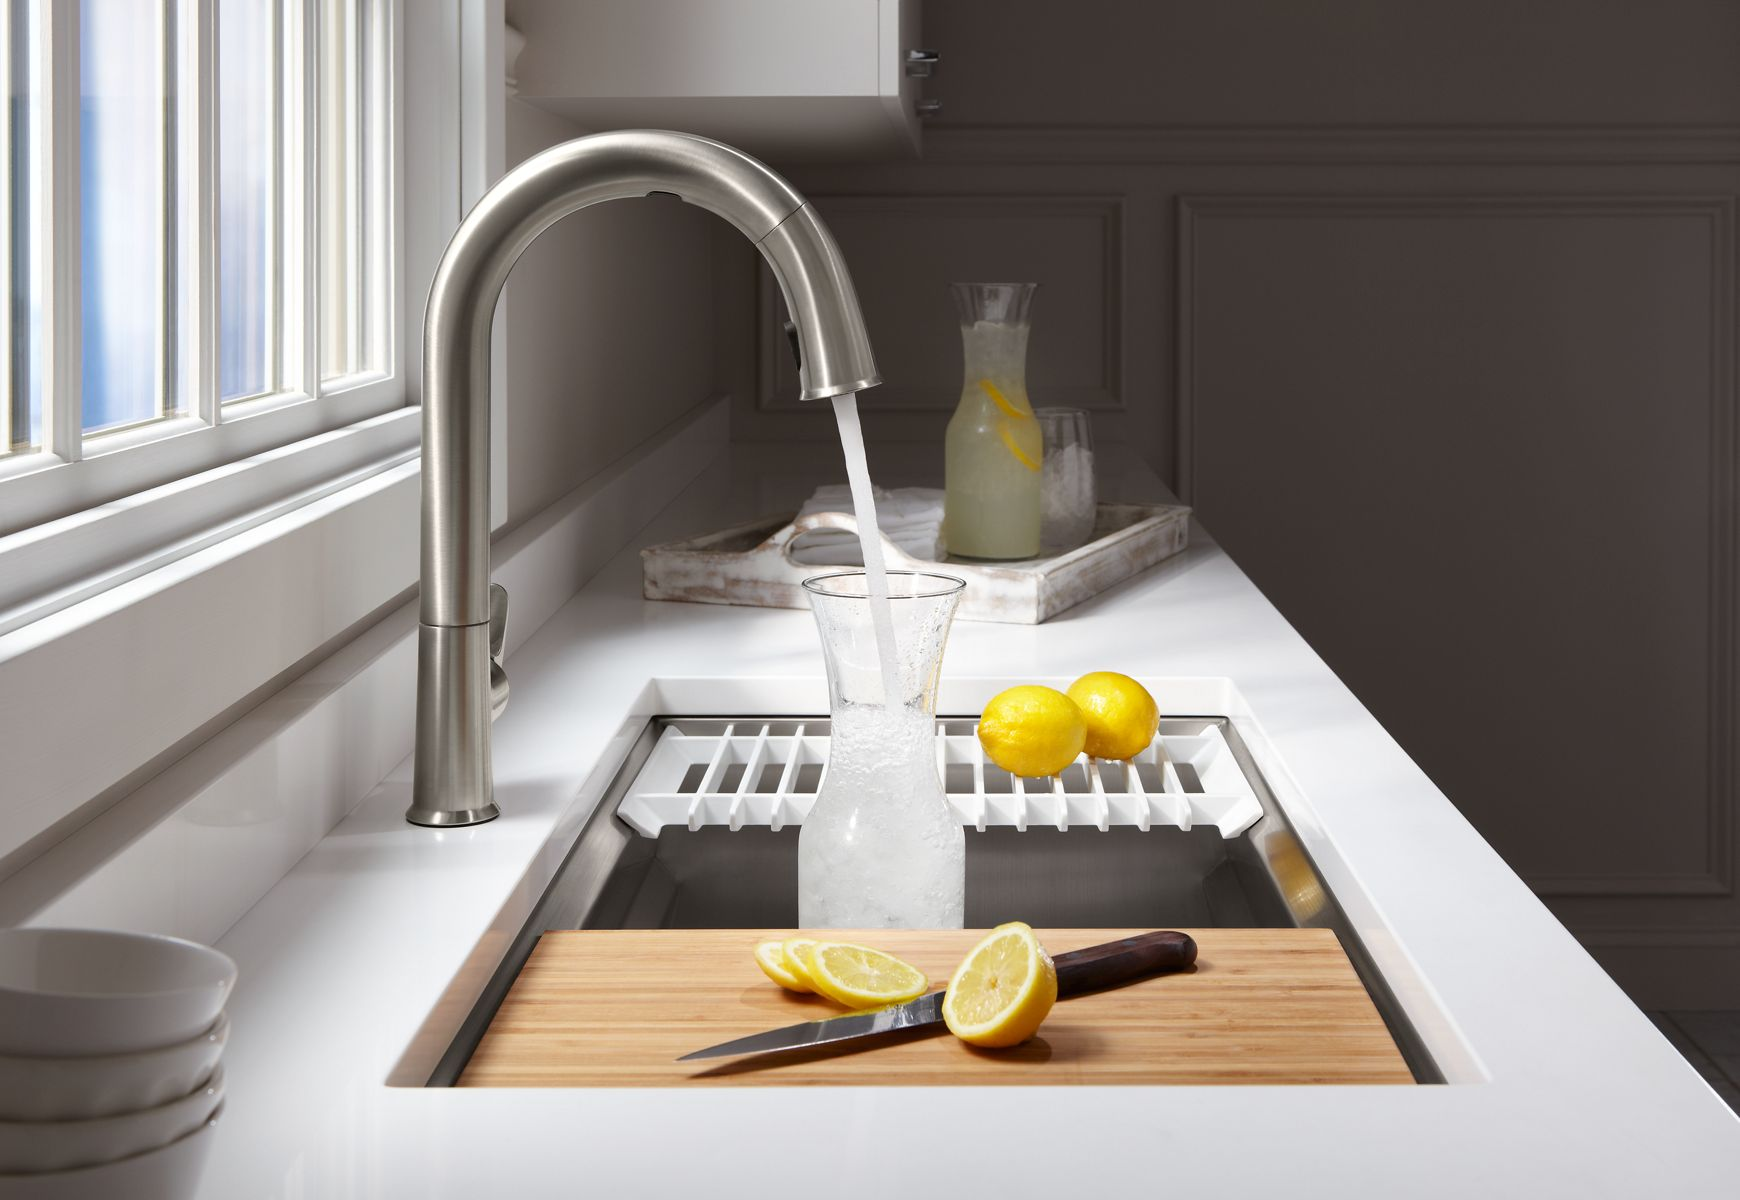 kitchen sink faucets clocks wine theme sensate touchless faucet with kohler konnect stainless steel rack 32 3 4 x 16 for k 5283 strive